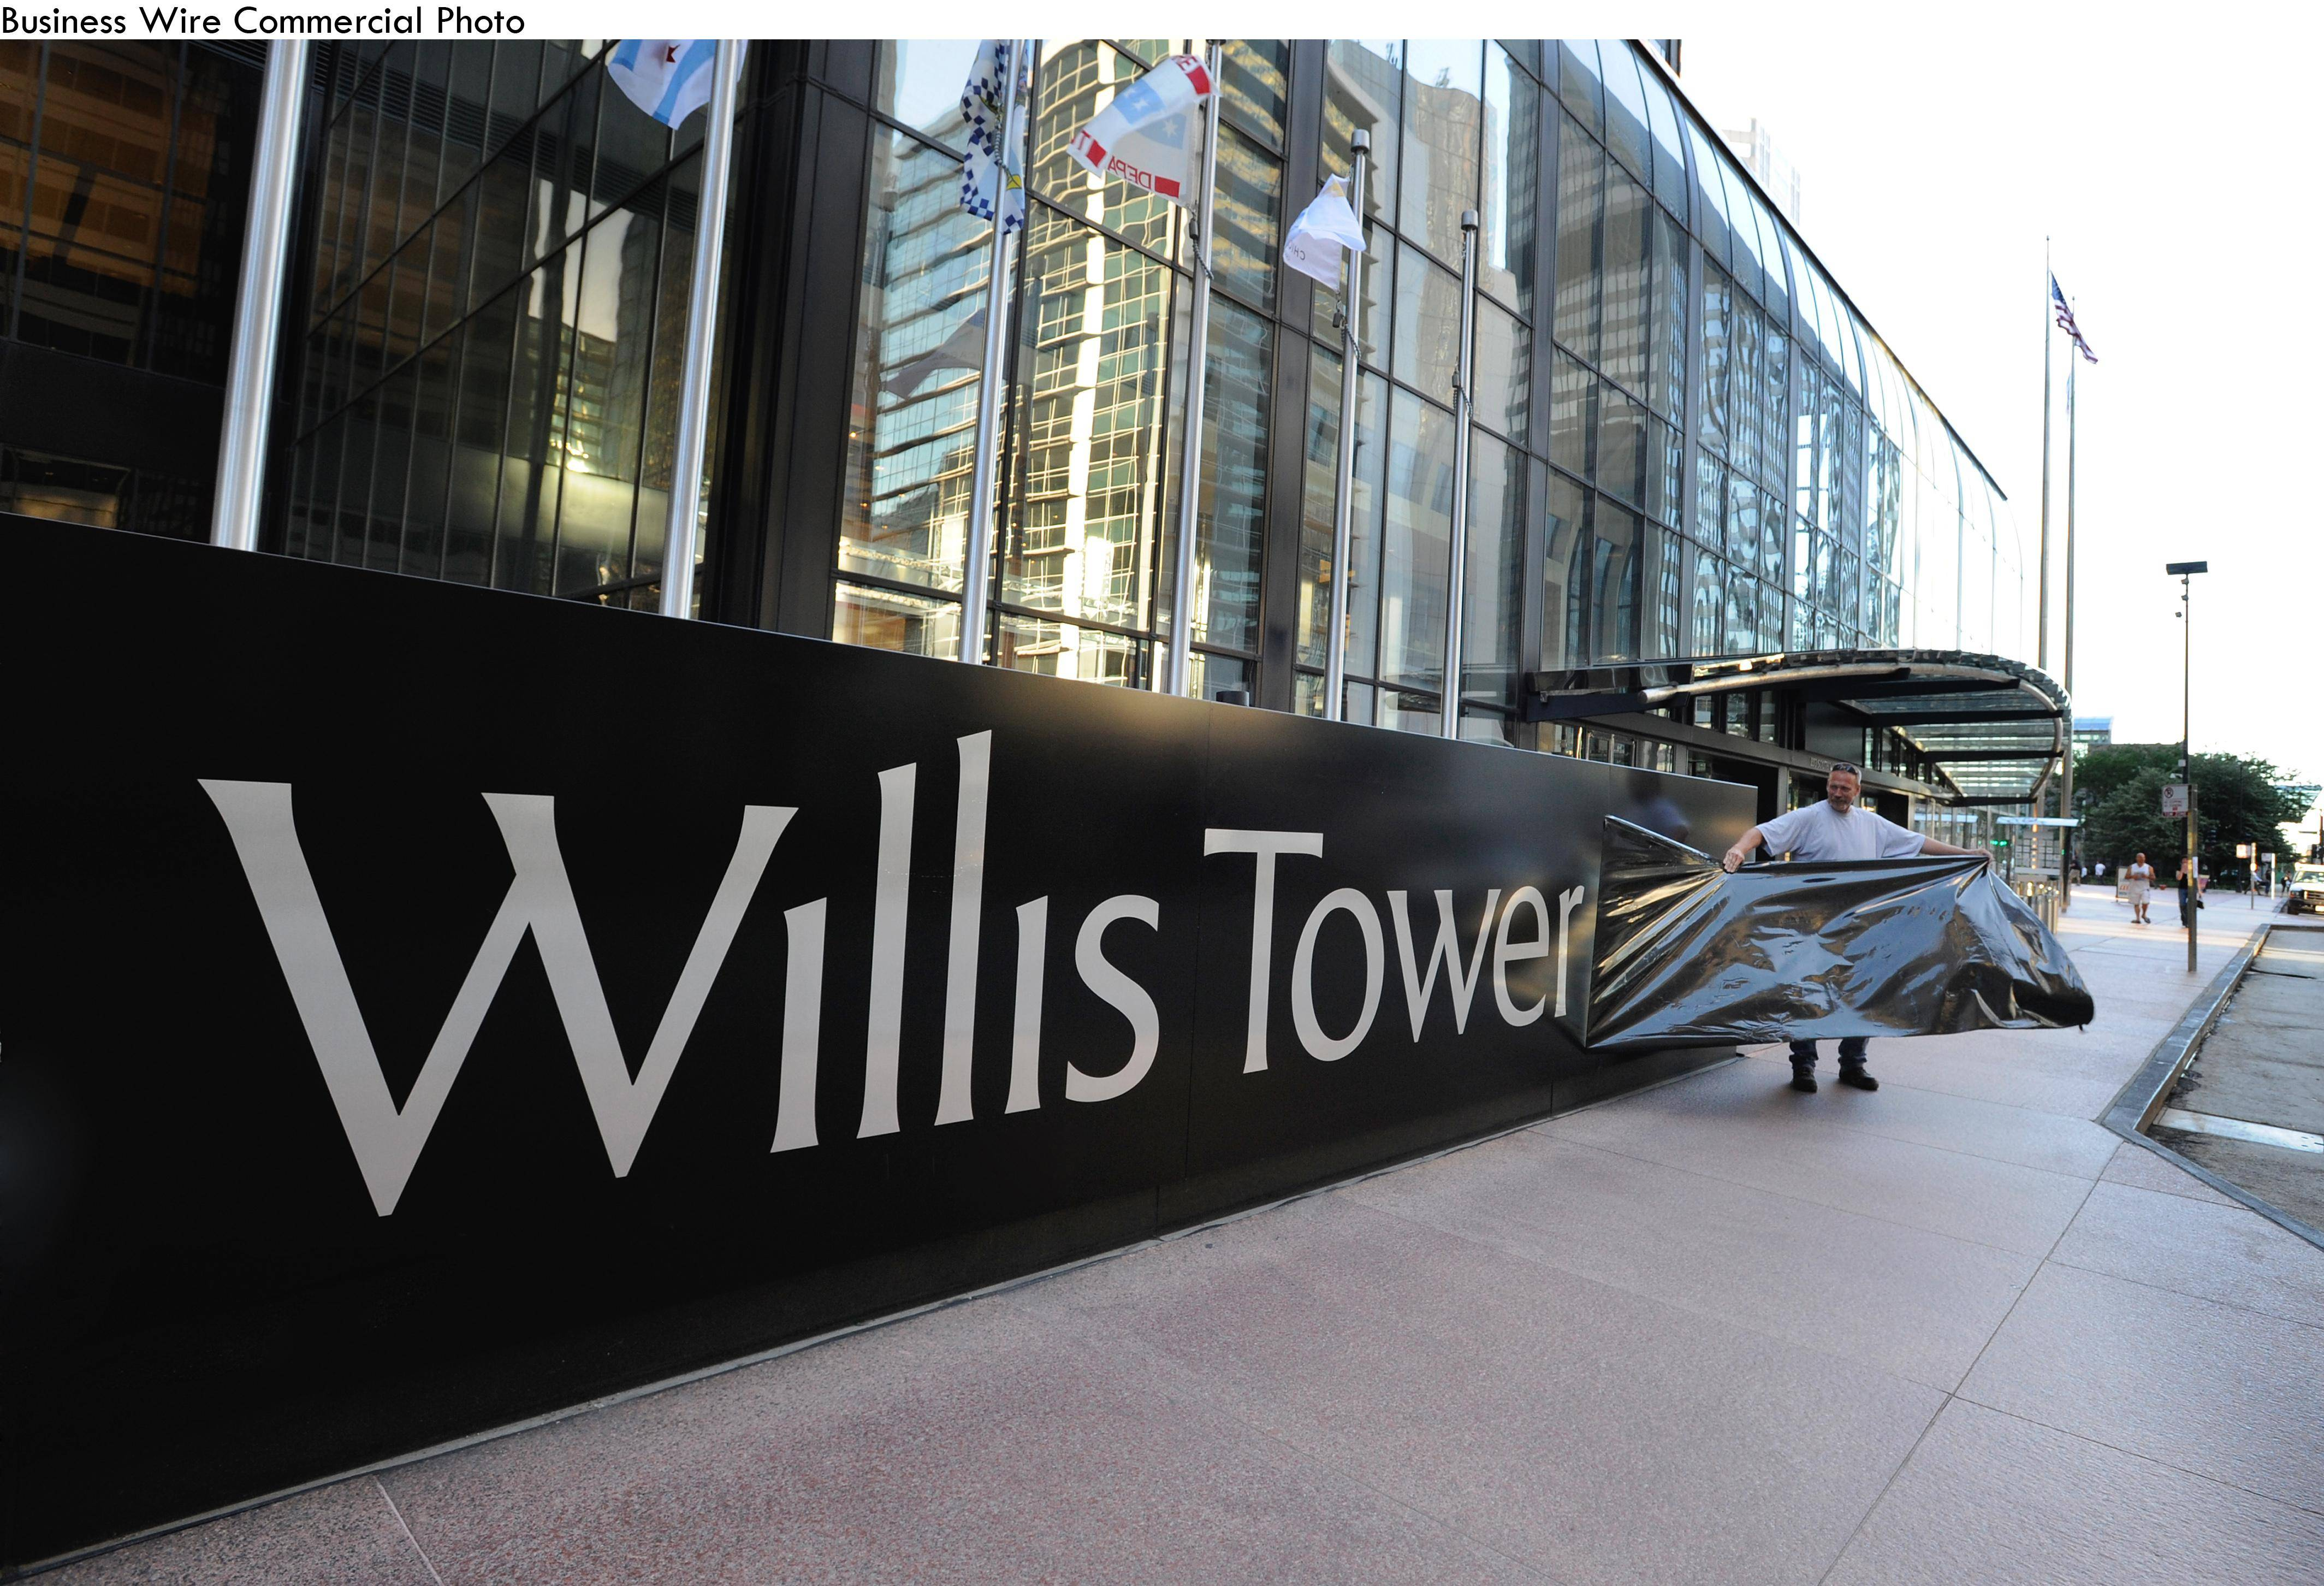 Willis Tower gets a buyer, not a name change